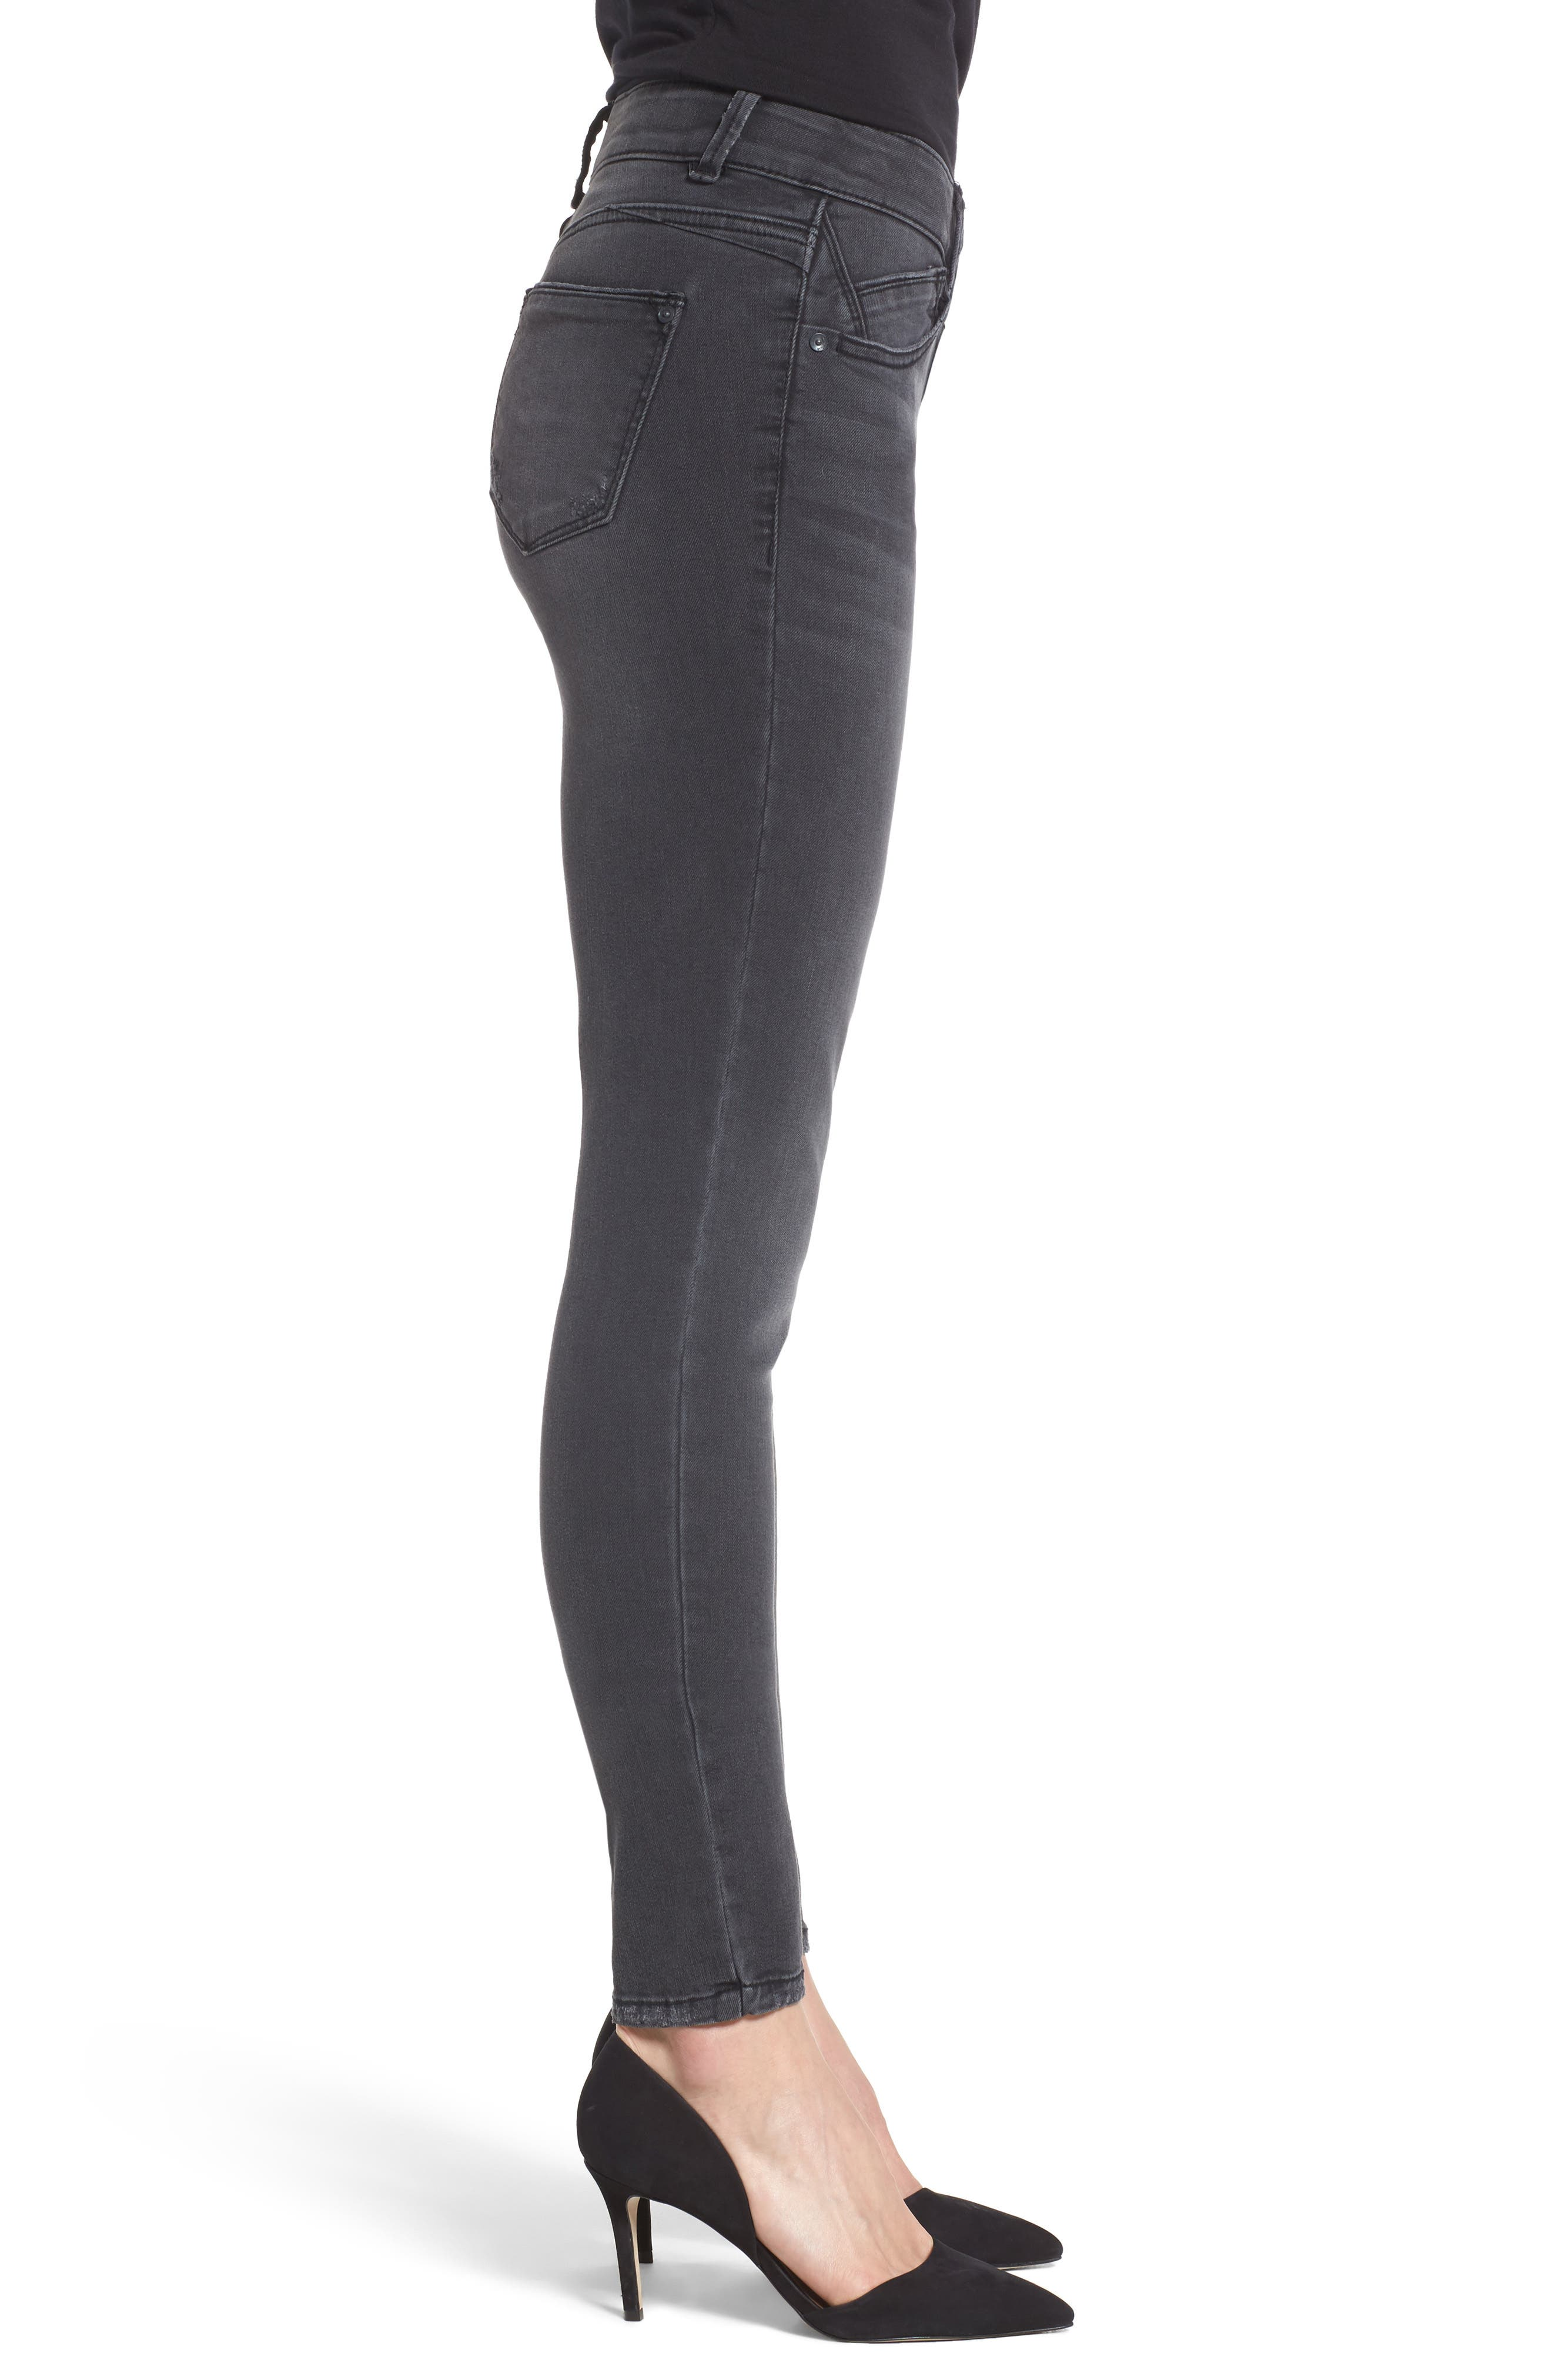 Ab-solution Stretch Skinny Jeans,                             Alternate thumbnail 3, color,                             GREY